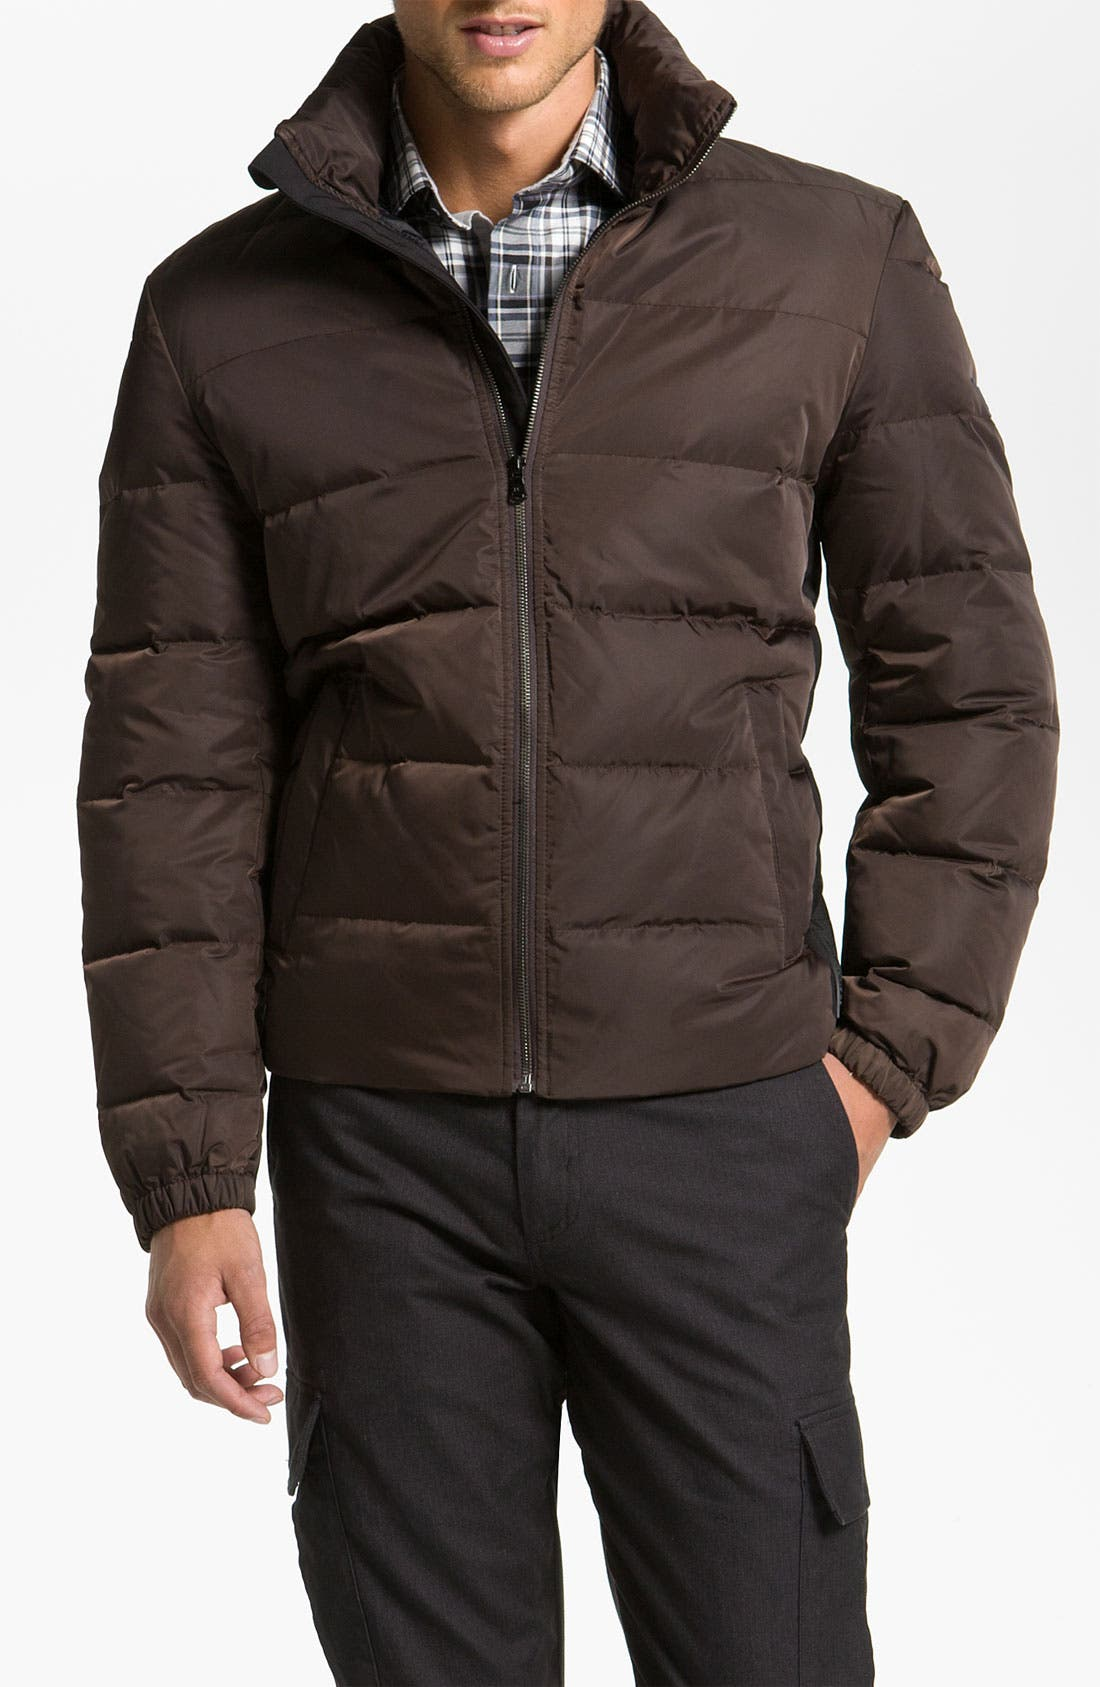 Main Image - Michael Kors 'Stowe' Quilted Down Jacket